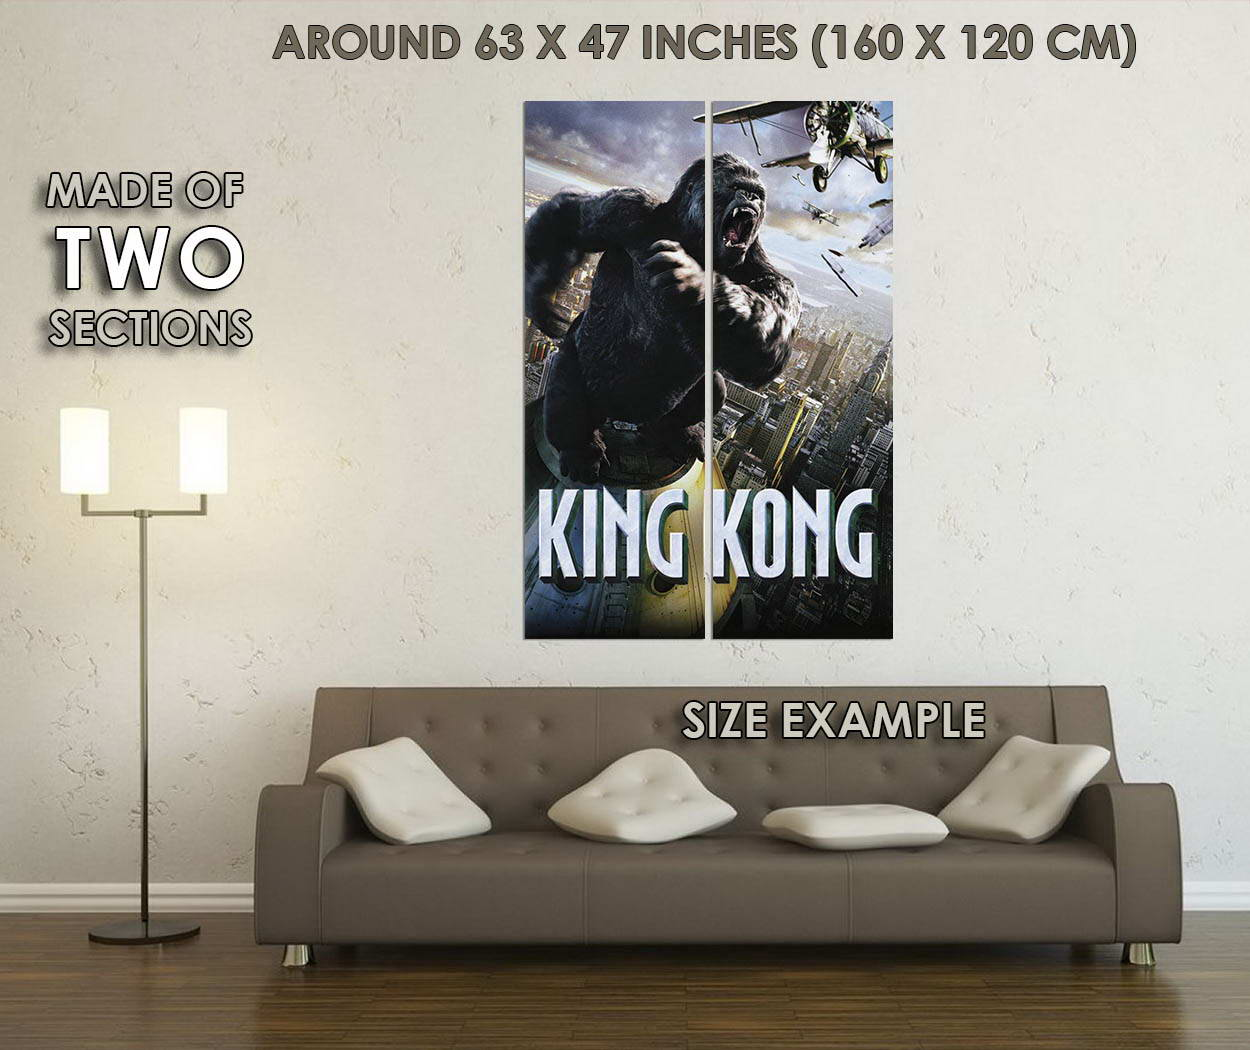 10592-The-King-Kong-Movie-LAMINATED-POSTER-CA thumbnail 6